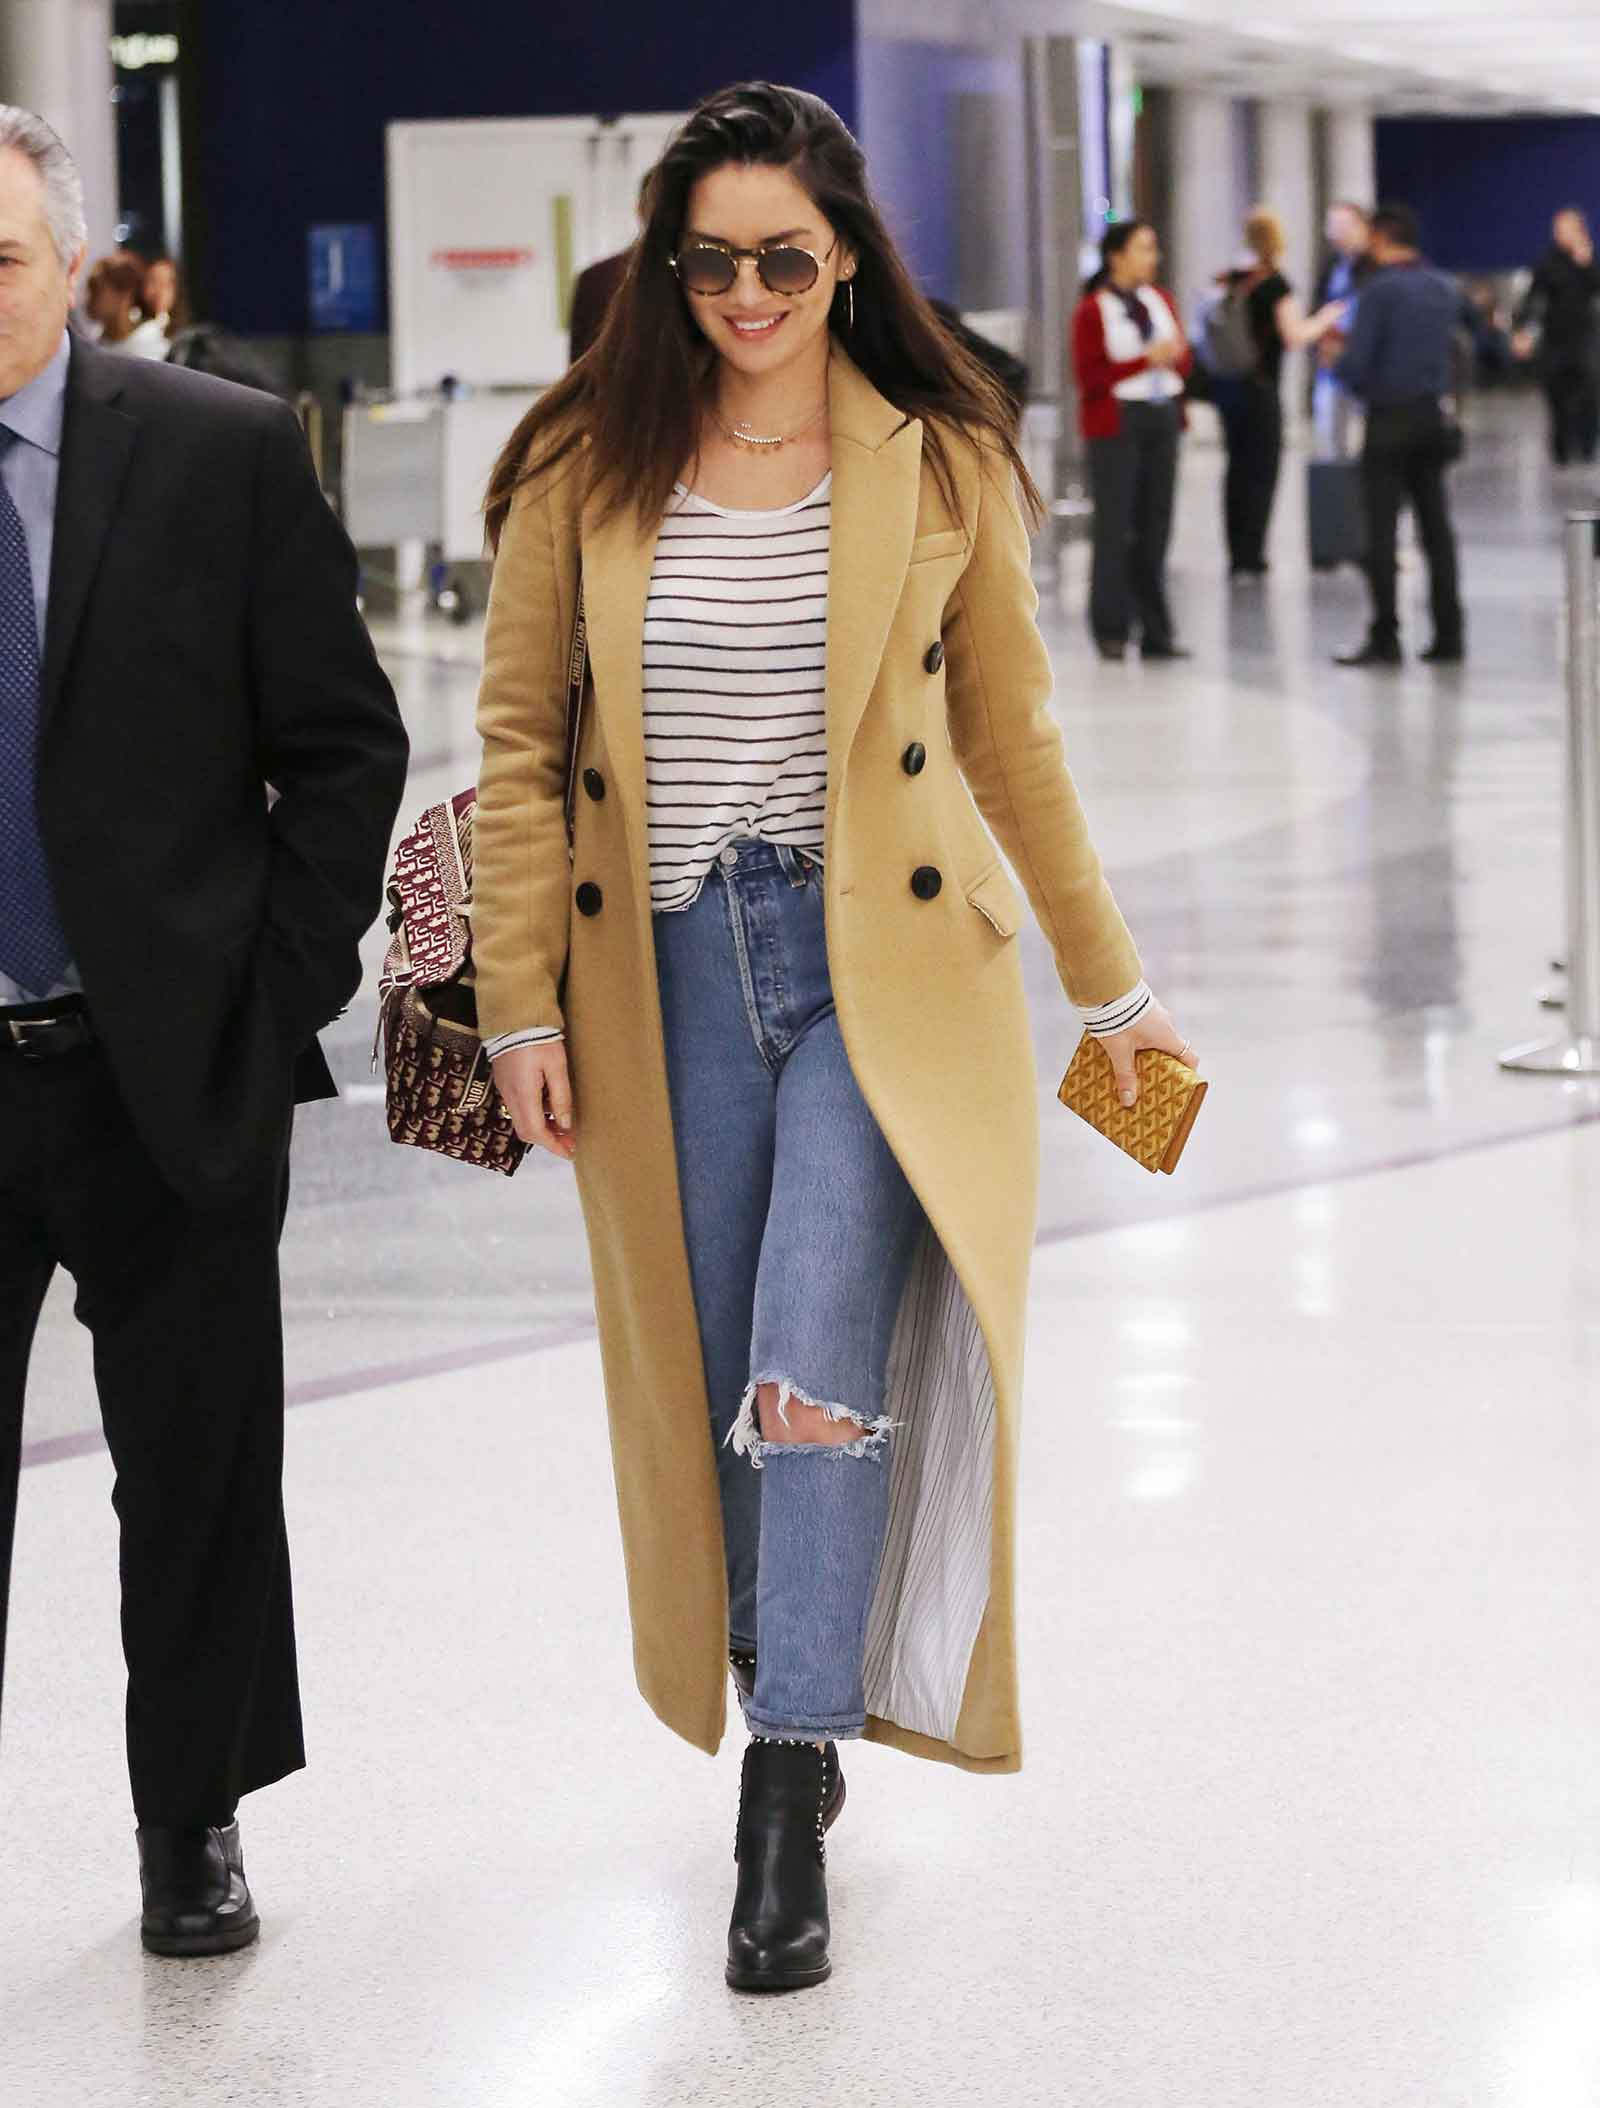 Olivia Munn's camel coat and striped tee, perfect everyday outfit!